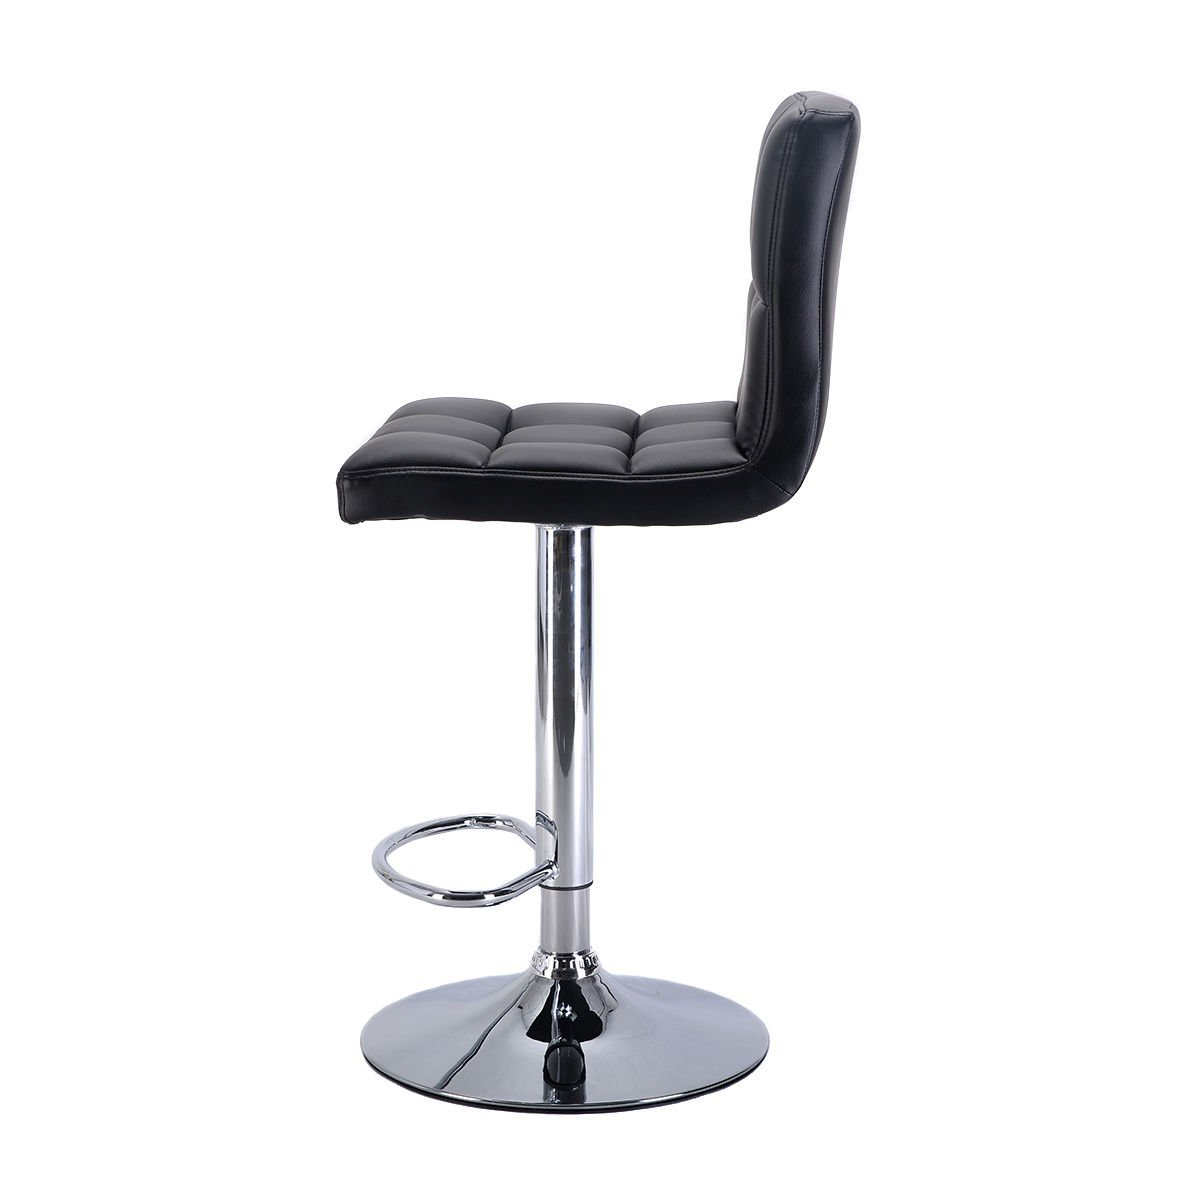 Costway Furniture Swivel PU Leather Barstools Chair Adjustable Hydraulic Coun...